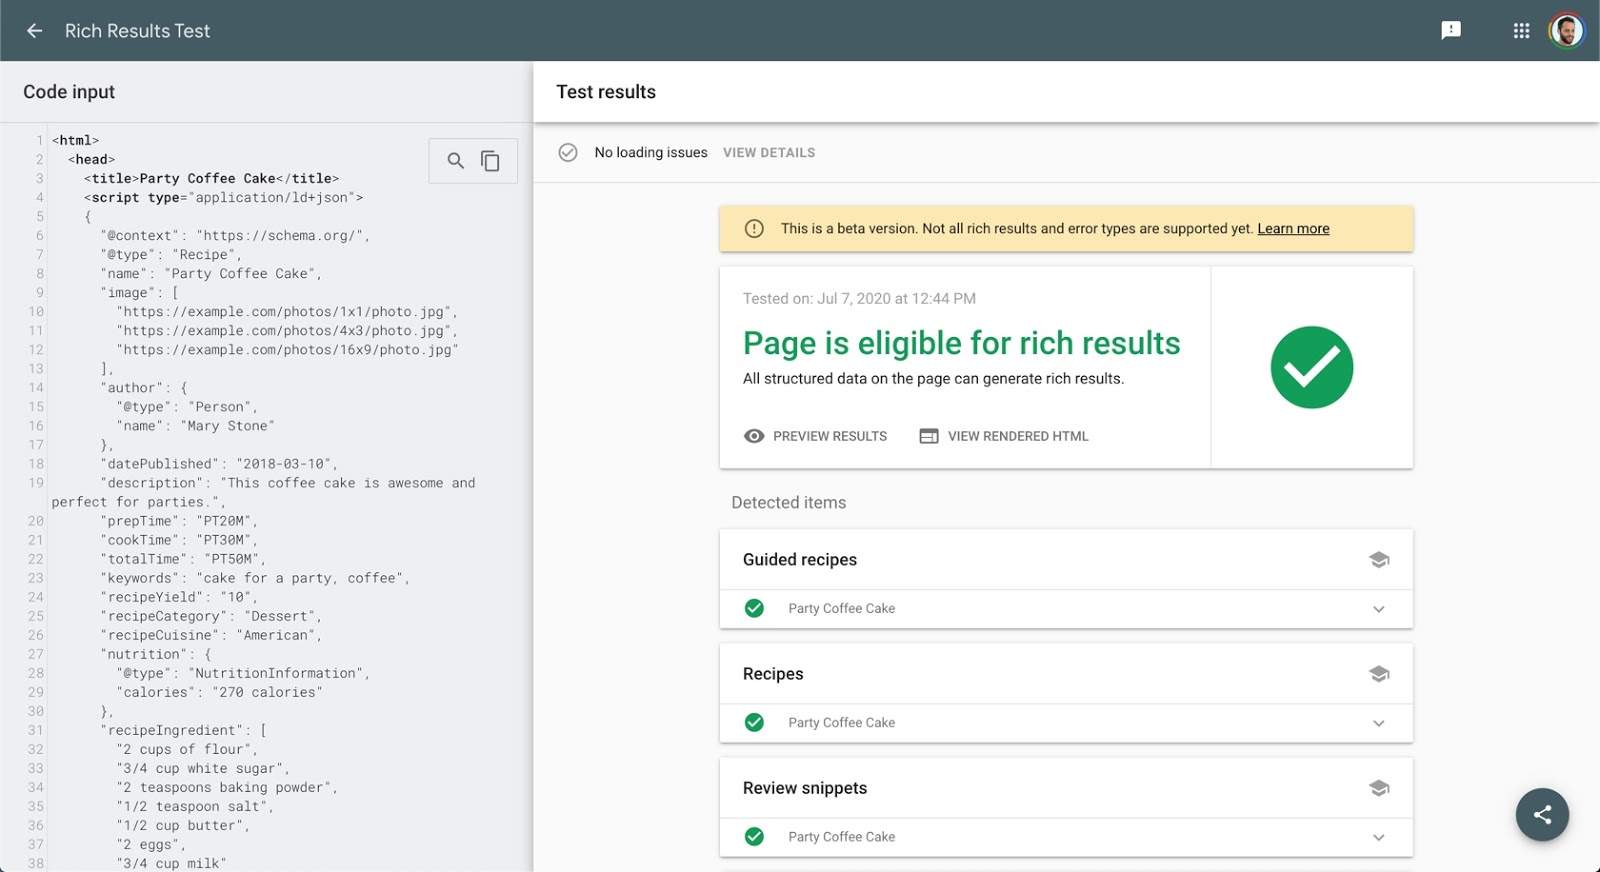 Update Google Search Console: Rich Result Test